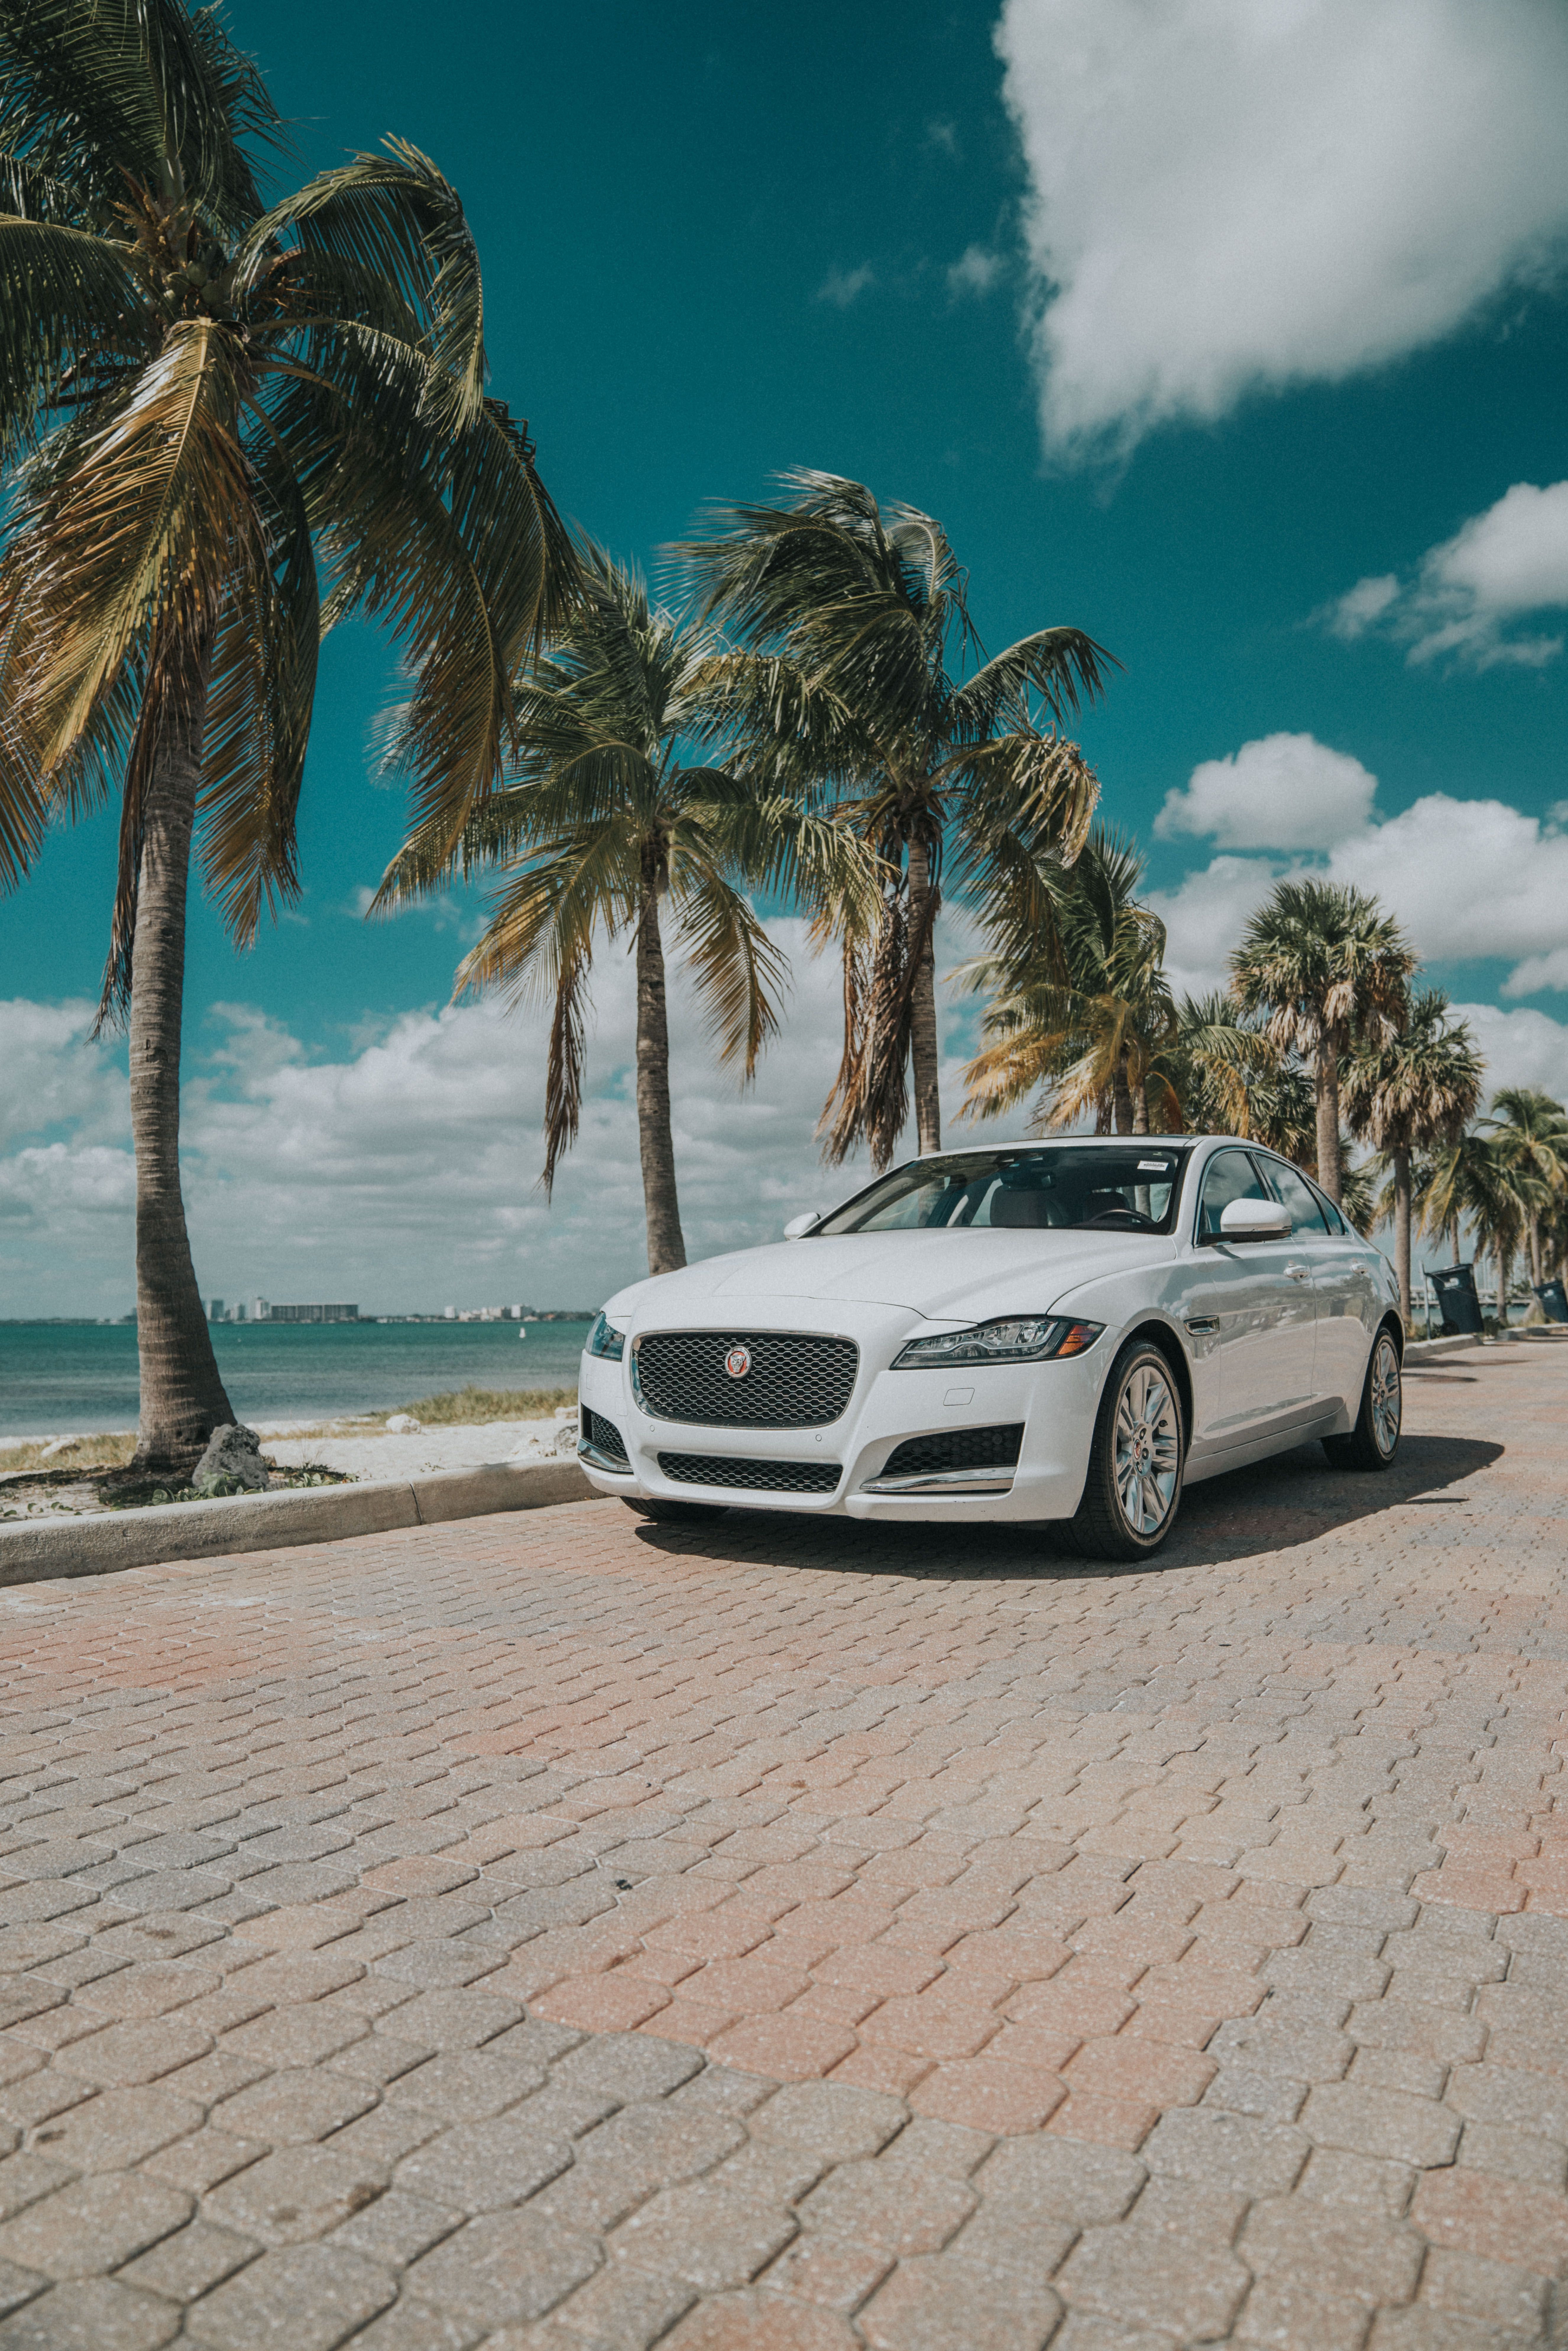 The Jaguar Everyone Wants In Their Life Miamibeach Keybiscayne Usedcars Preownedvehicles Luxurycars Used Cars Cars For Sale Cars